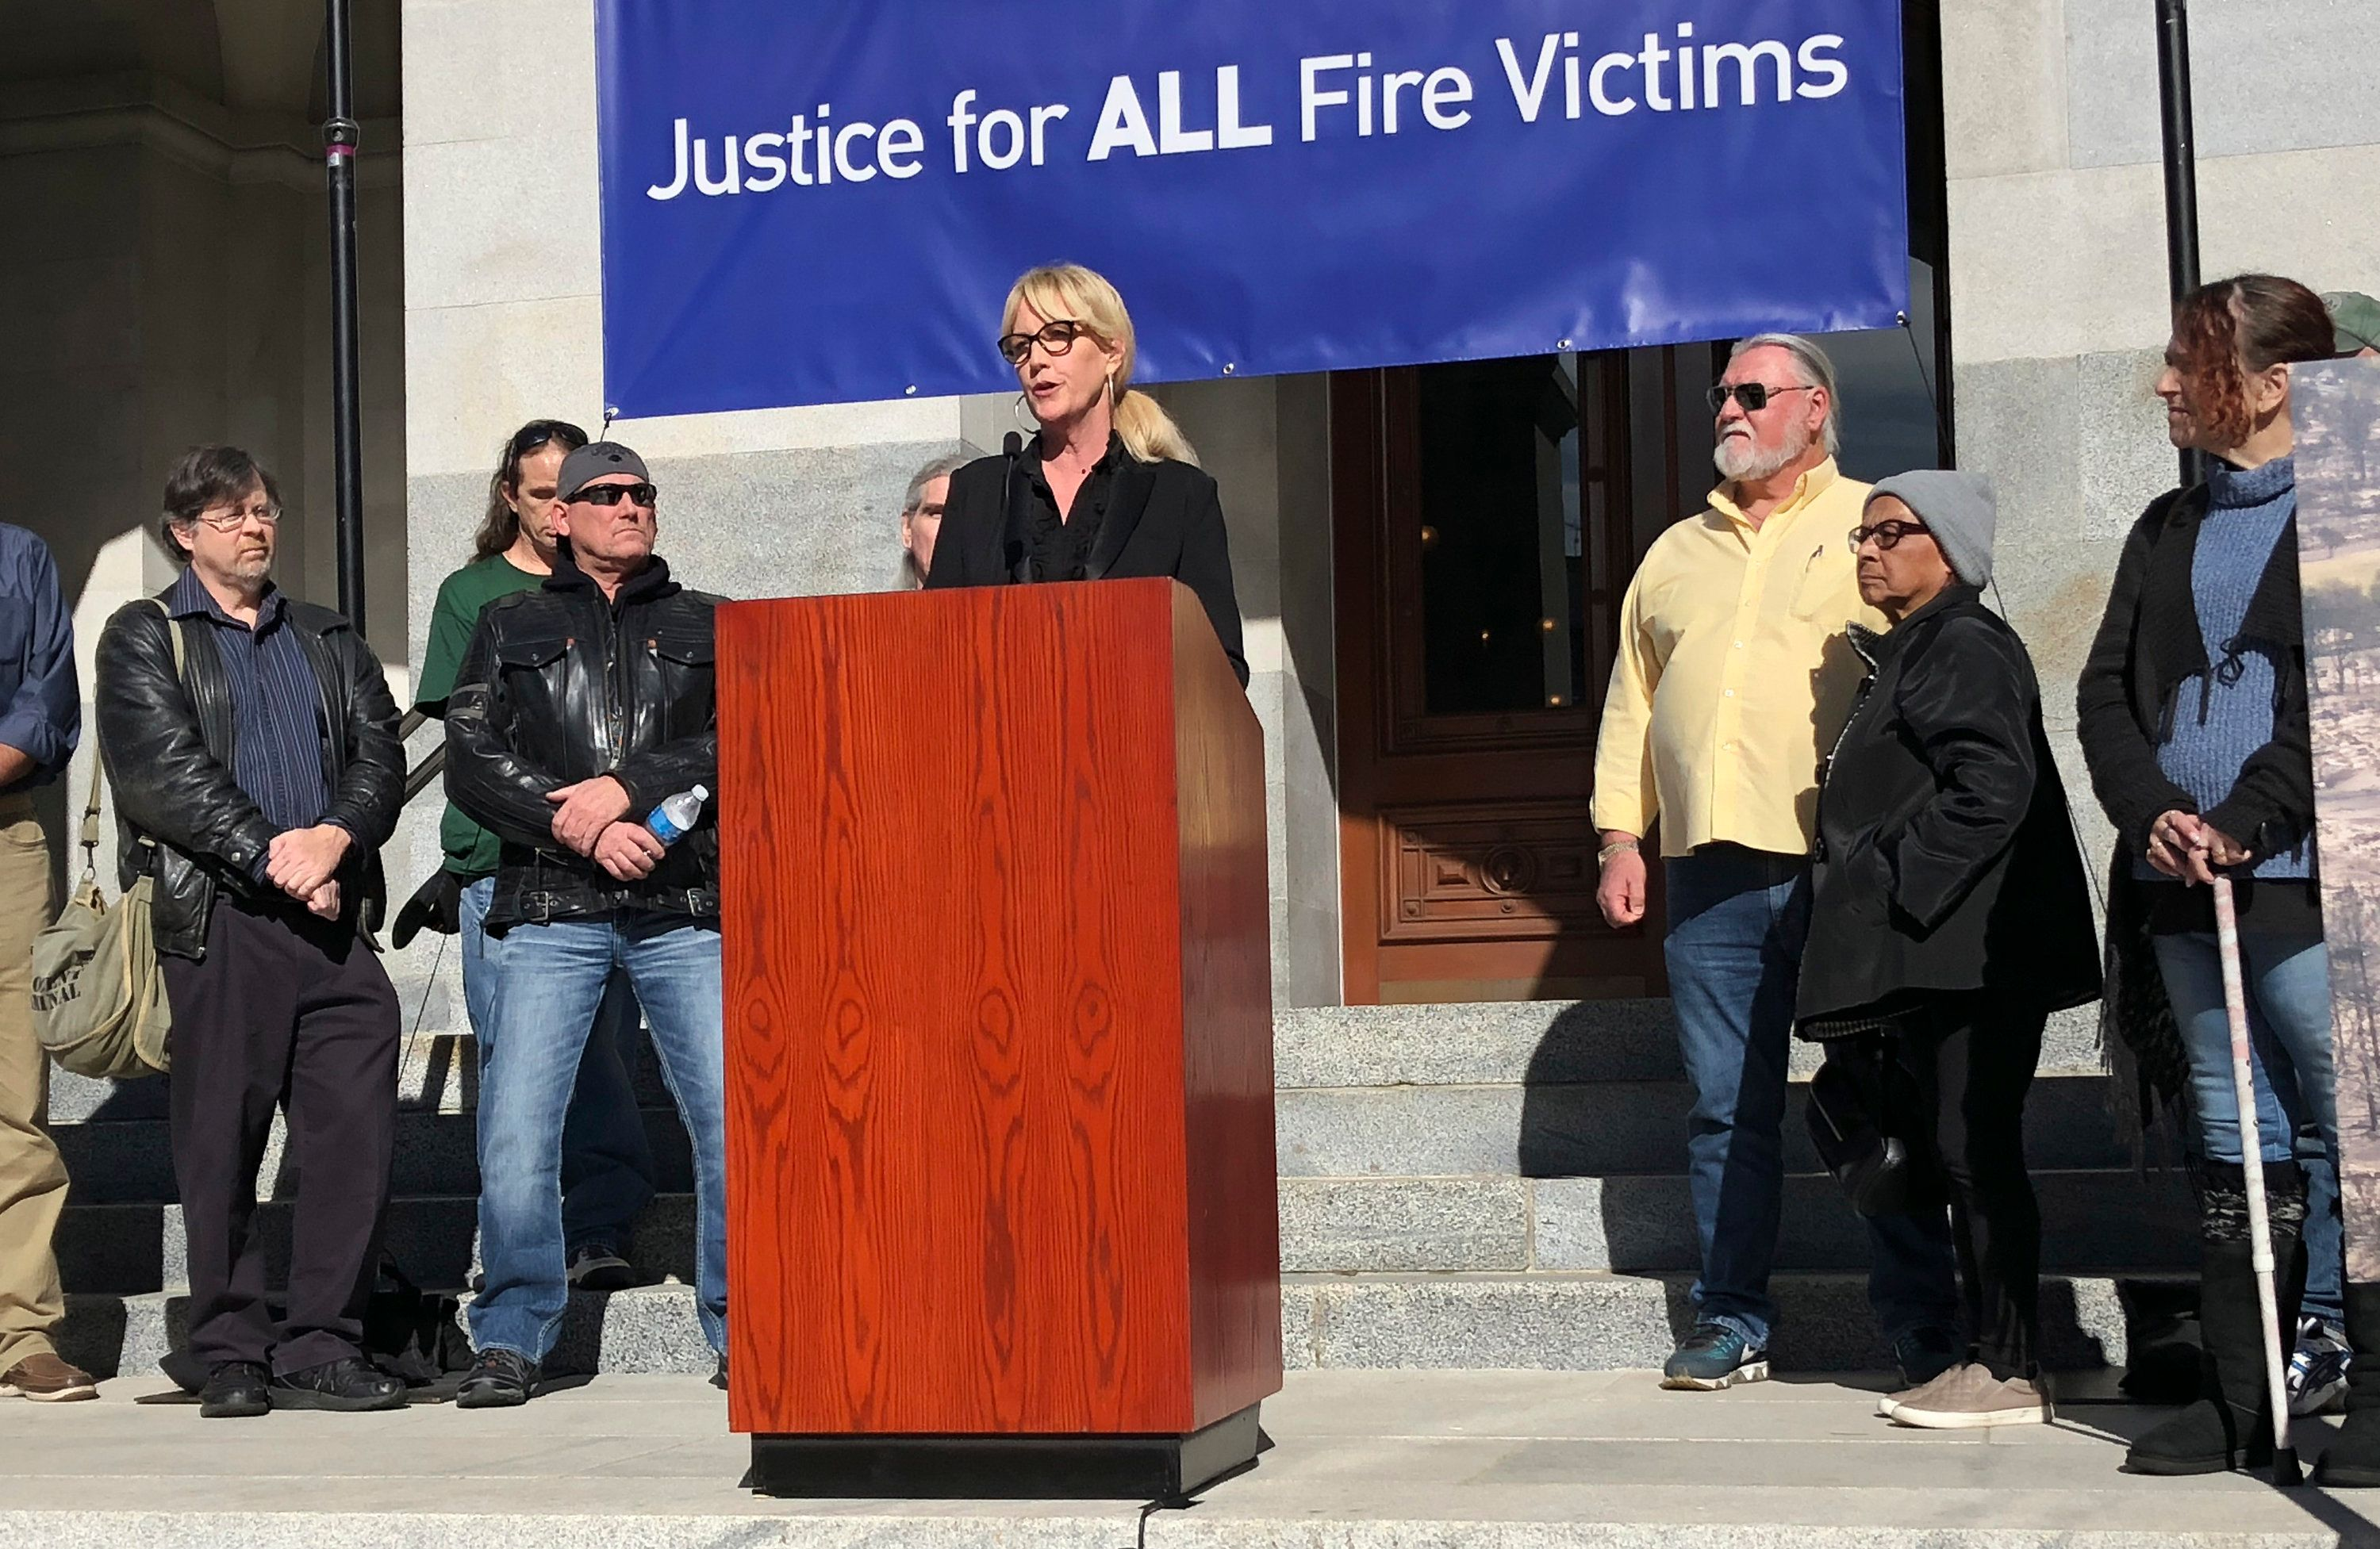 <p> Consumer advocate Erin Brockovich, who famously took on Pacific Gas & Electric Co. in the 1990s, stands with wildfire victims and speaks outside the state Capitol Tuesday, Jan. 22, 2019, in Sacramento, Calif. Brockovich is urging California lawmakers not to let PG&E go bankrupt because it might mean less money for wildfire victims. (AP Photo/Kathleen Ronayne) </p>